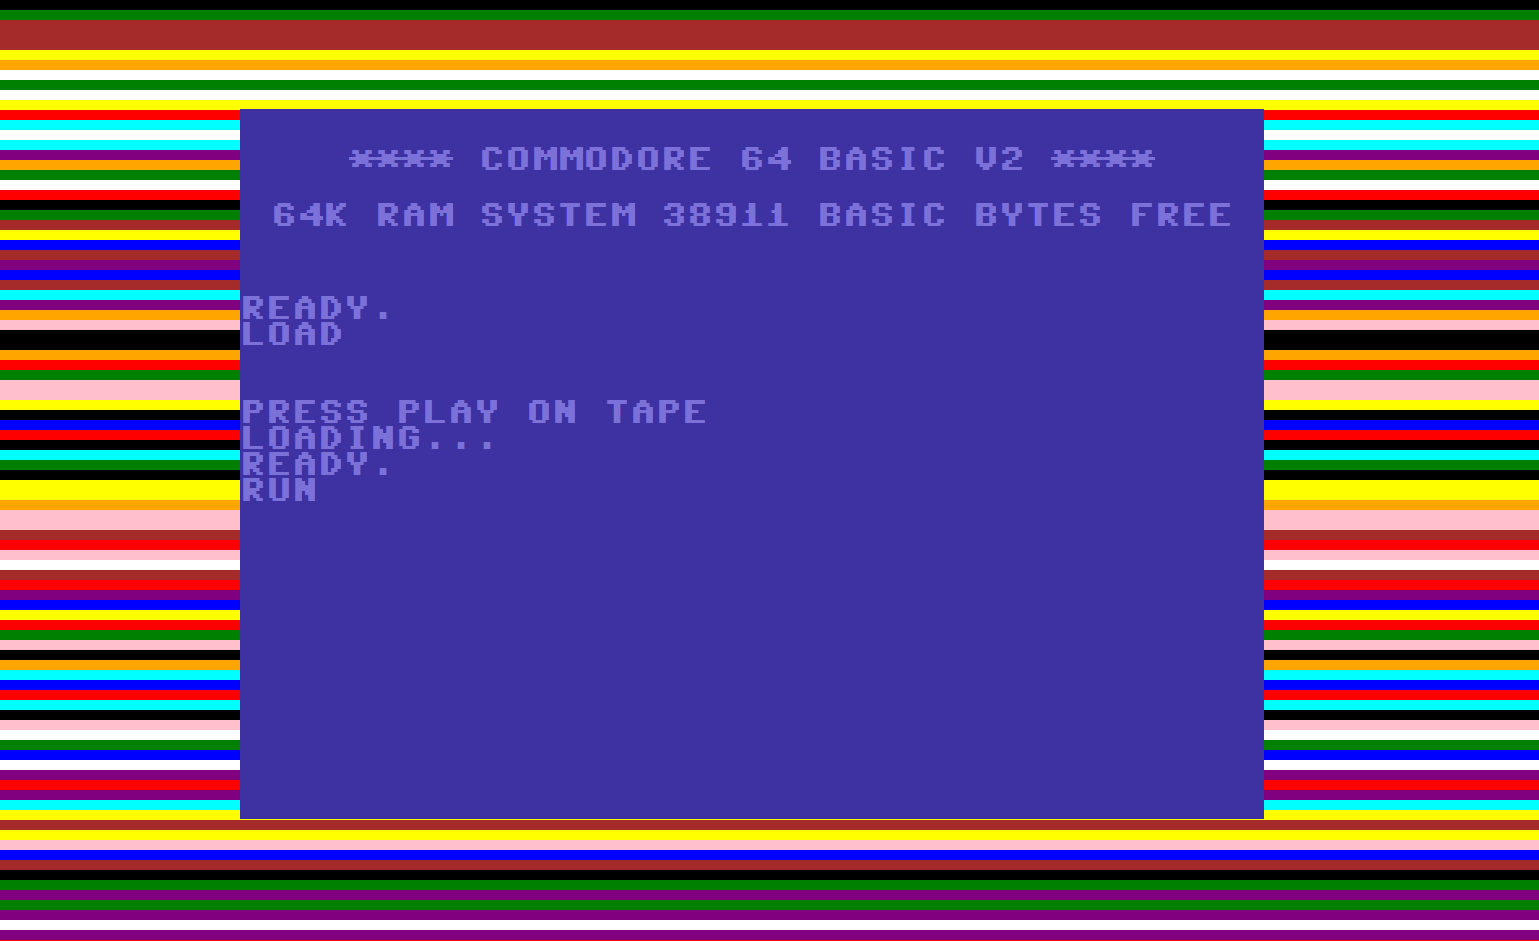 Image result for commodore 64 game loading screen